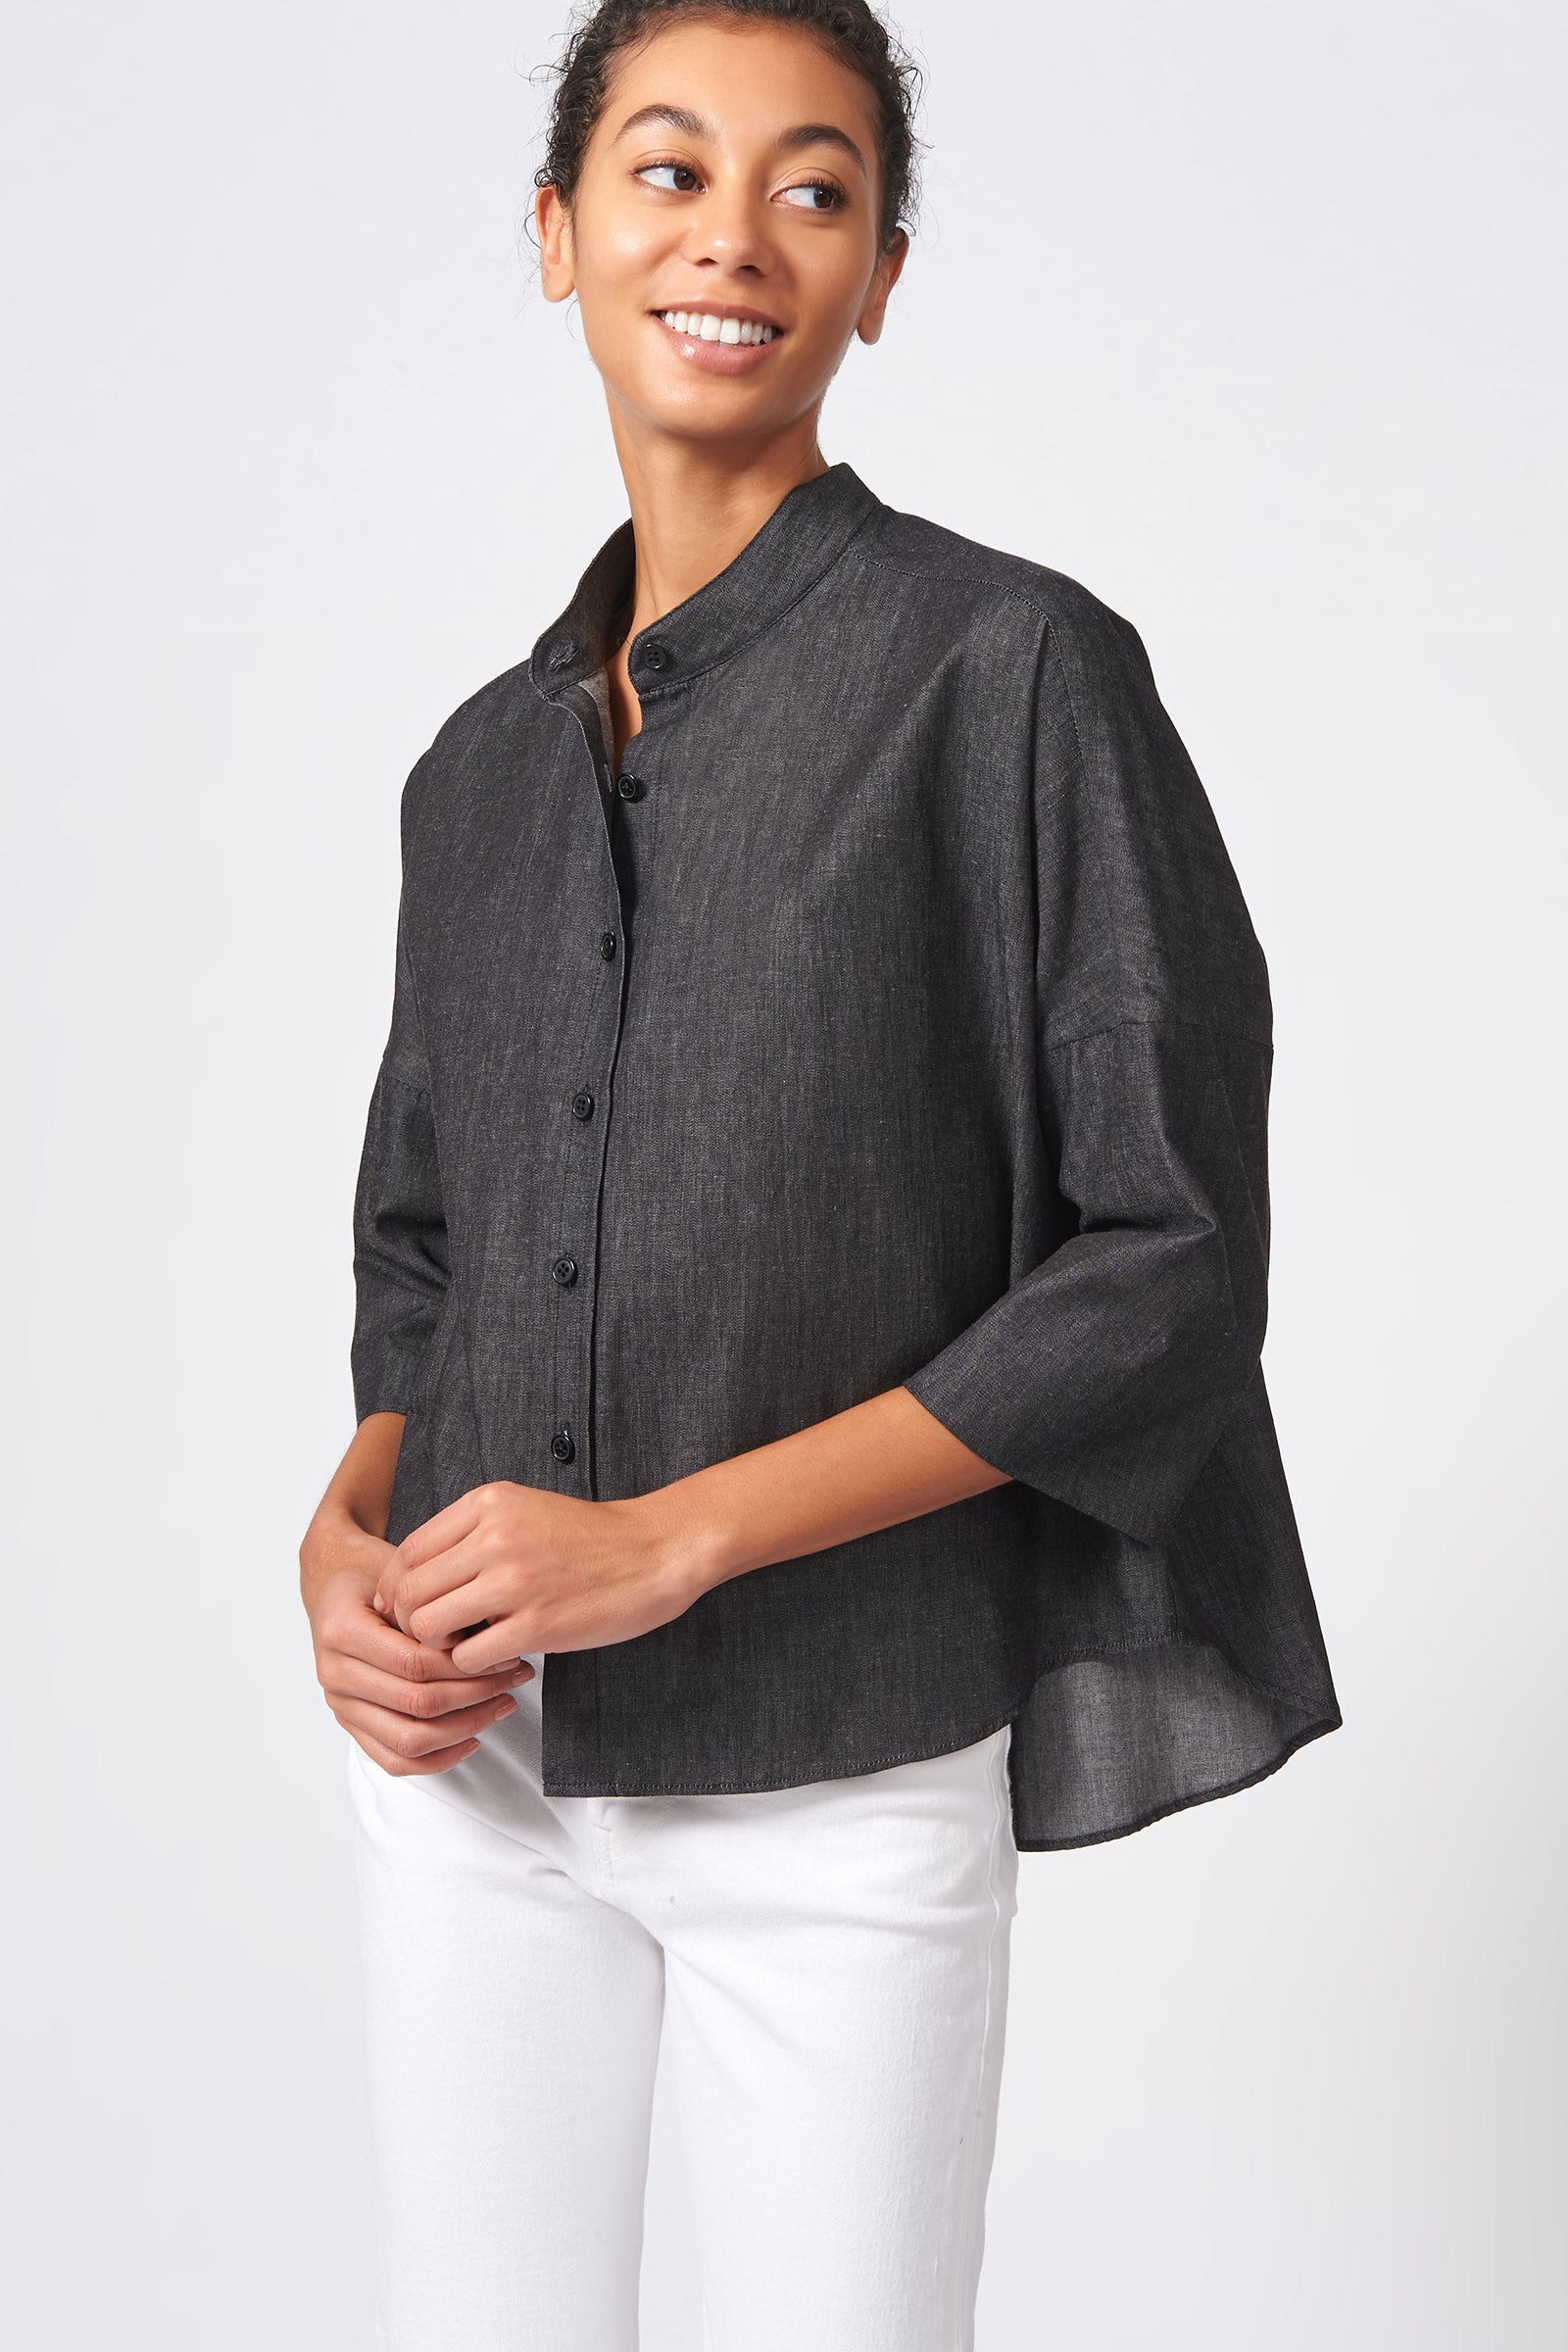 Kal Rieman Drop Shoulder Top in Dark Denim on Model Front View